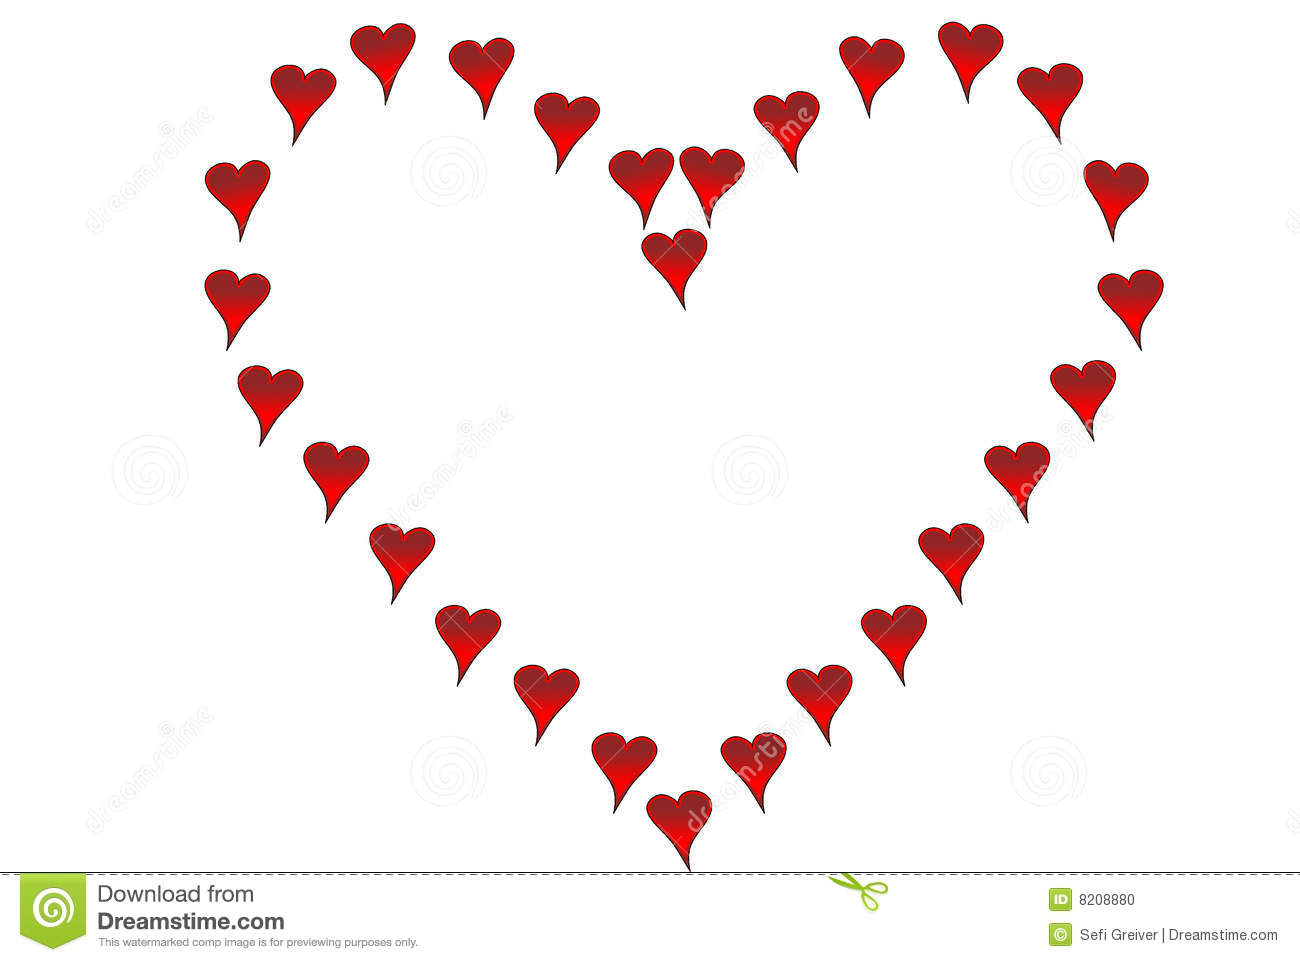 Small Hearts Shaped Like Big Heart Stock Illustration